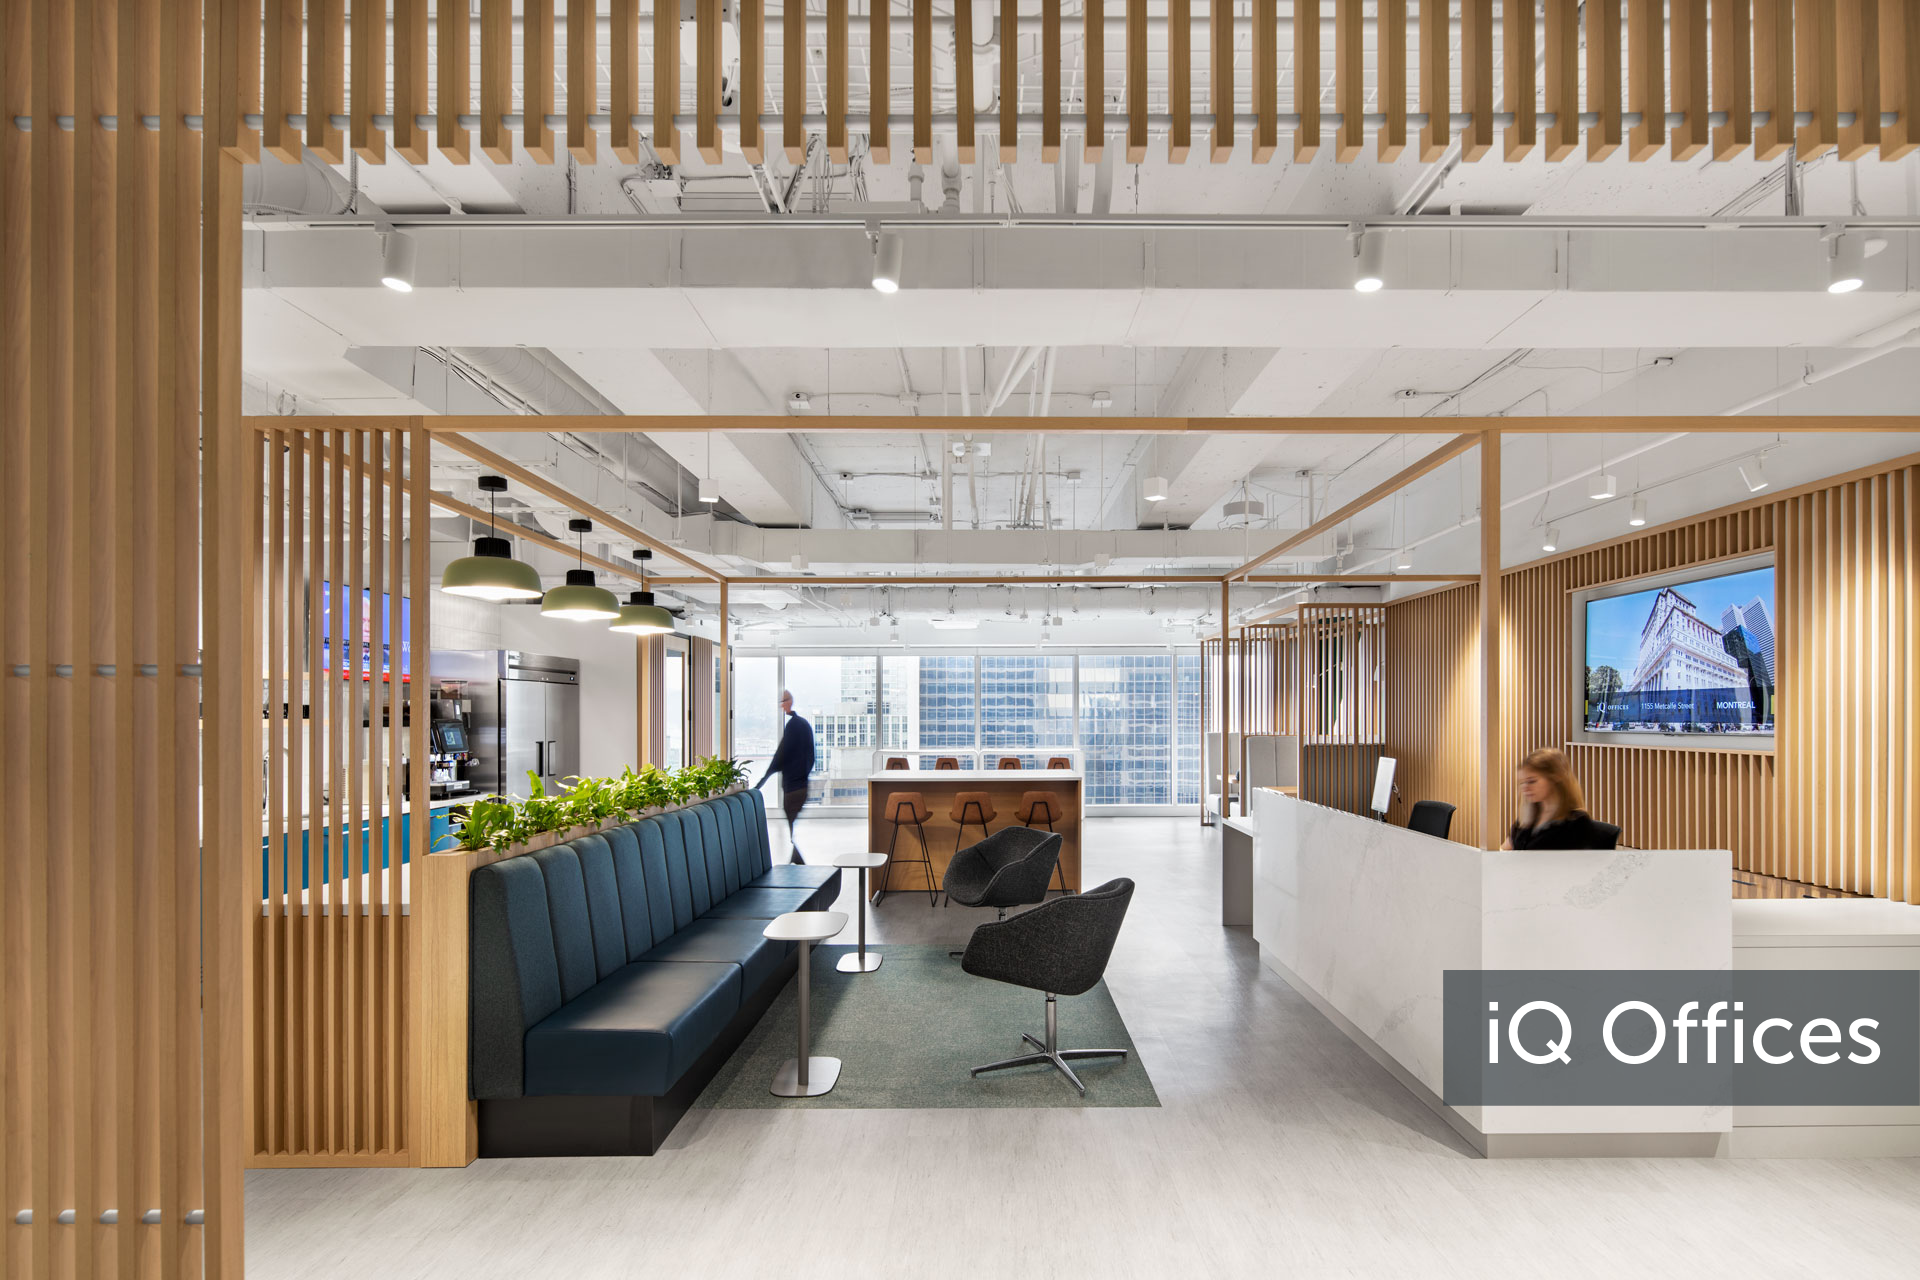 Canada's iQ Offices offers flexible workspaces for enterprise employees who Work From Anywhere